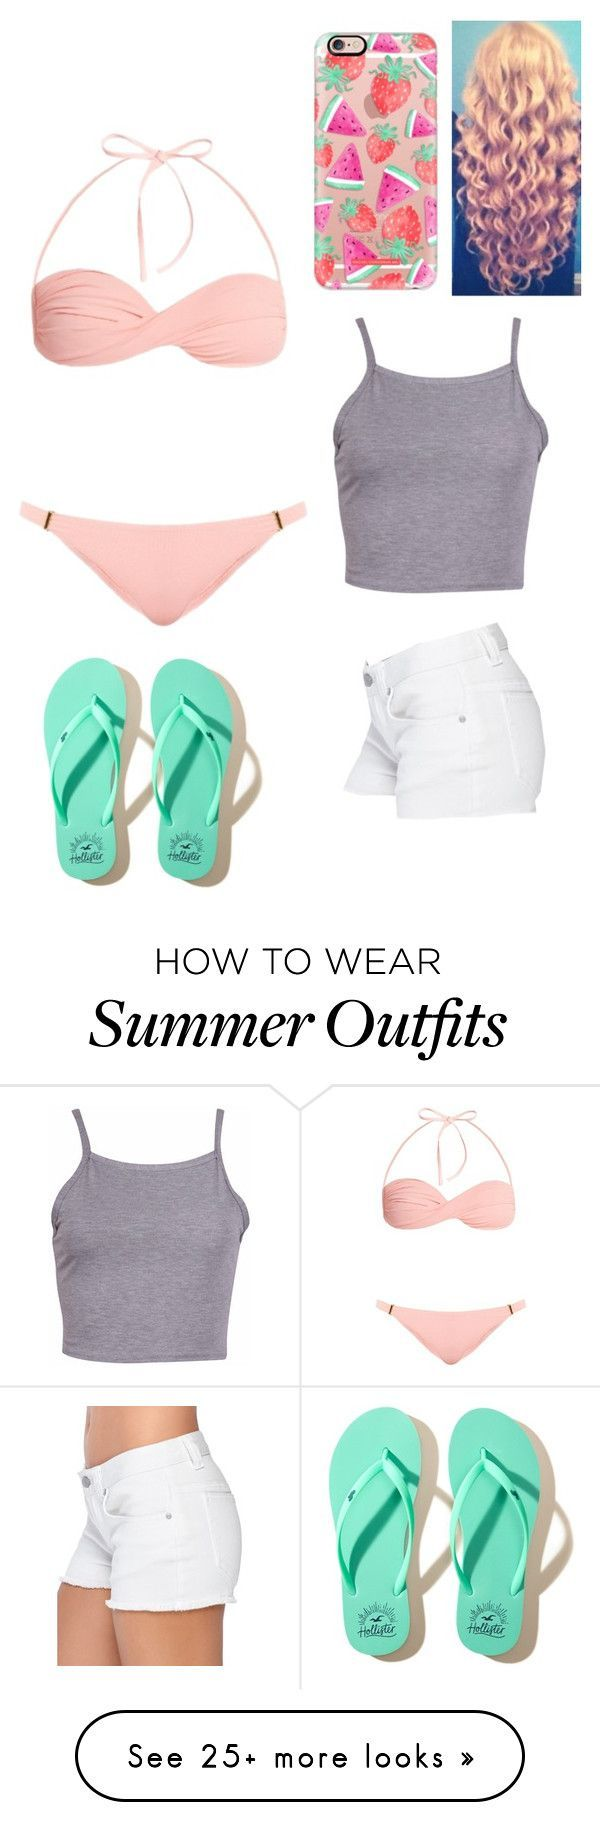 Summer Outfits : Beach/boardwalk outfit made by @xoxamandalou  by caka-1 on Polyvore featuring